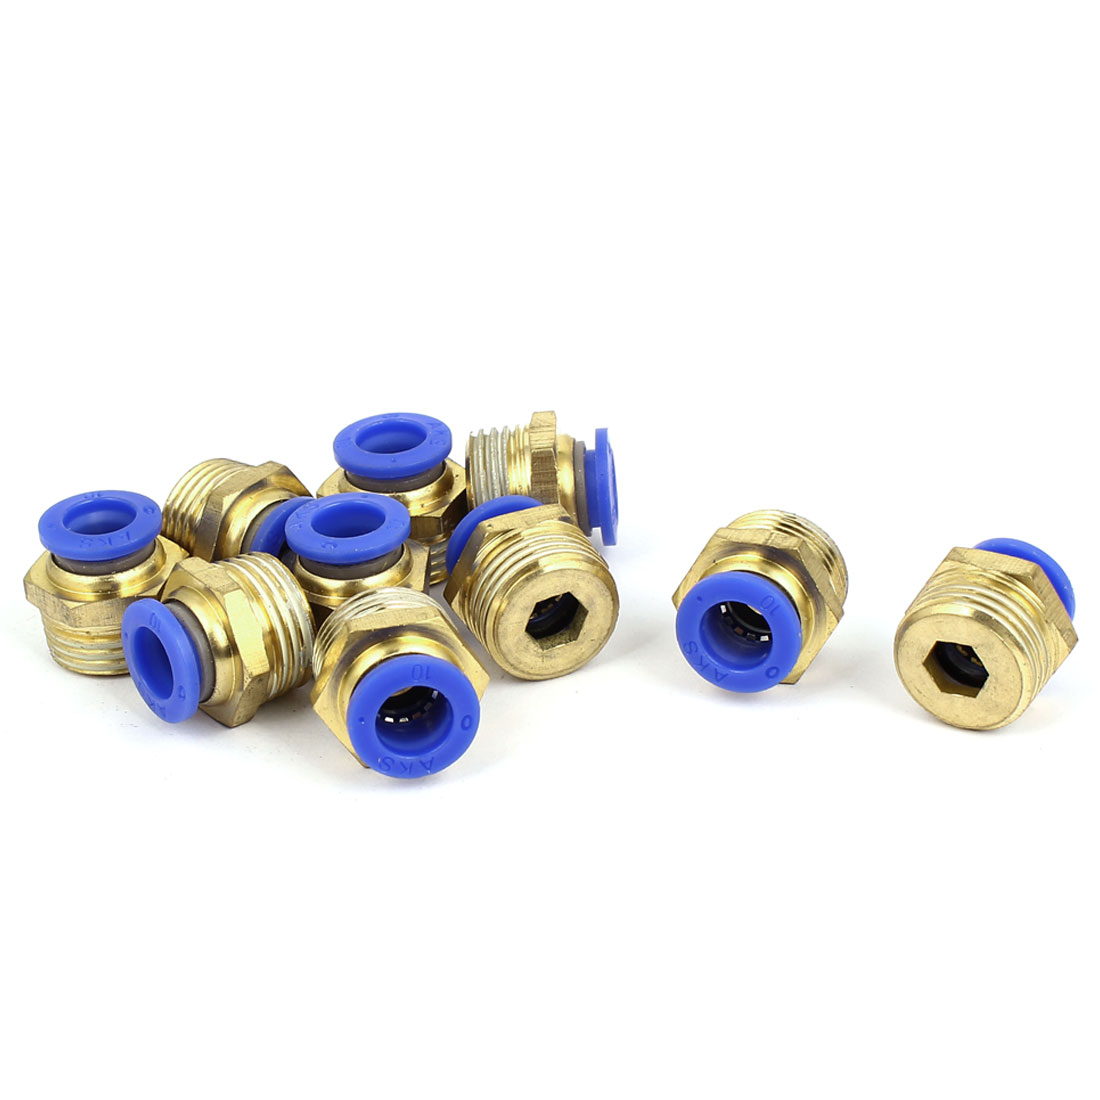 10pcs Pneumatic Flow Control Quick Fitting Coupler 10mm Tube to 1/2BSP Male Thread